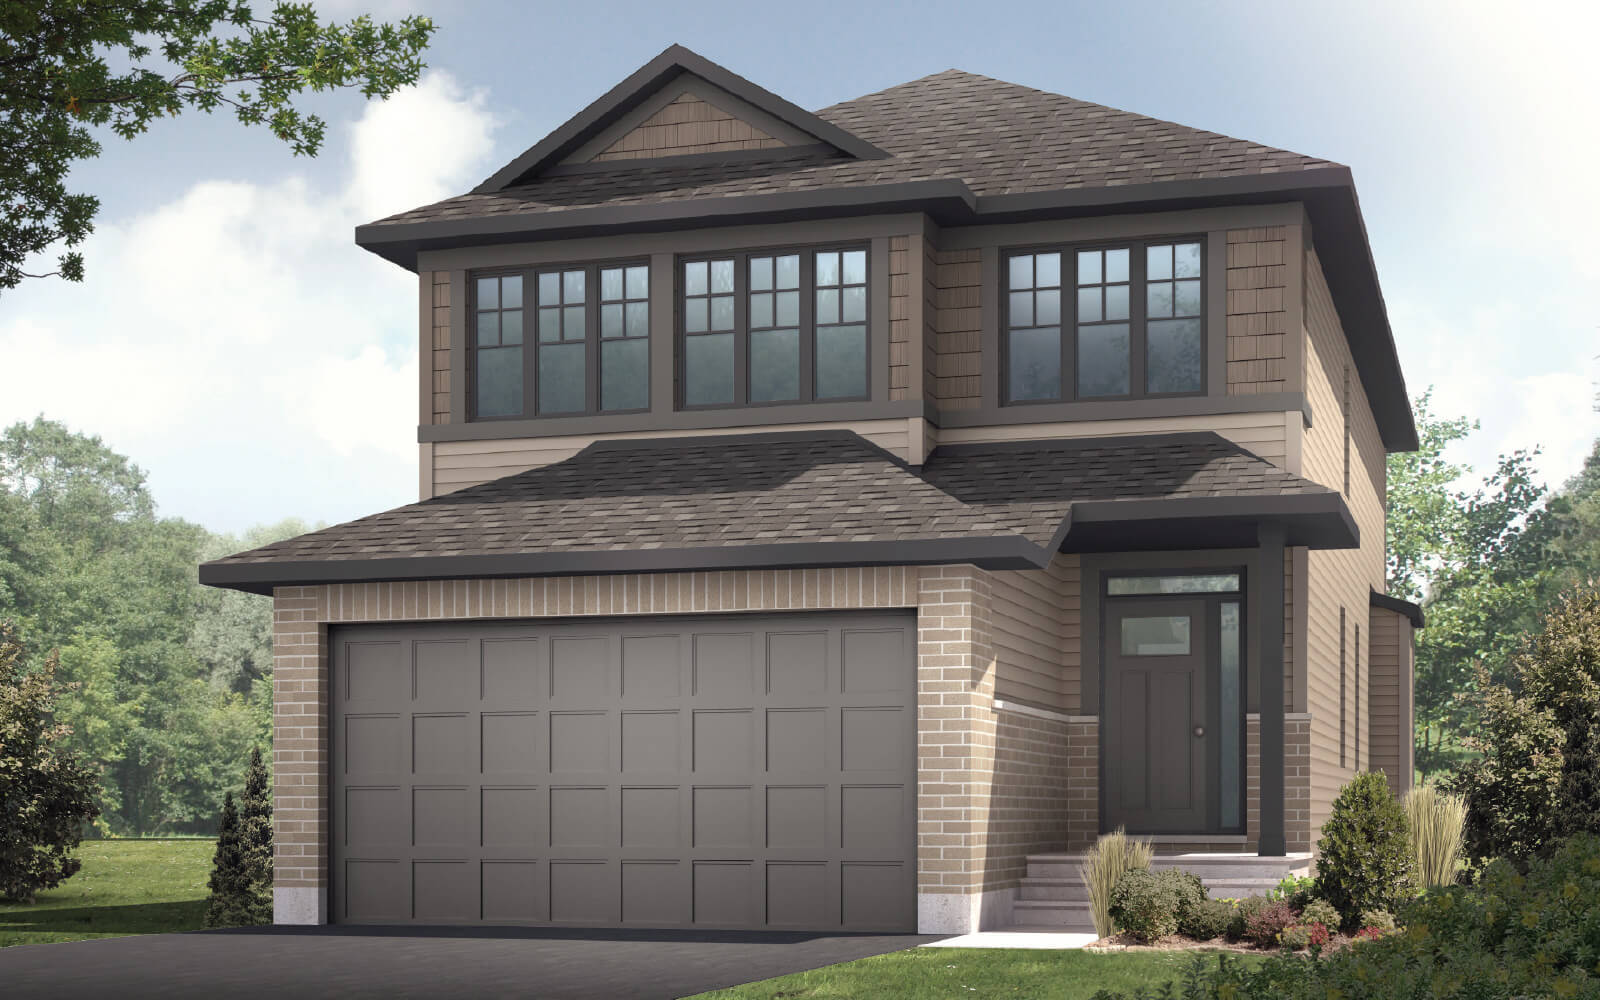 New Calgary Single Family Home Paloma in Shawnee Park, located at 515 EdenWylde Drive, Stittsville Built By Cardel Homes Calgary